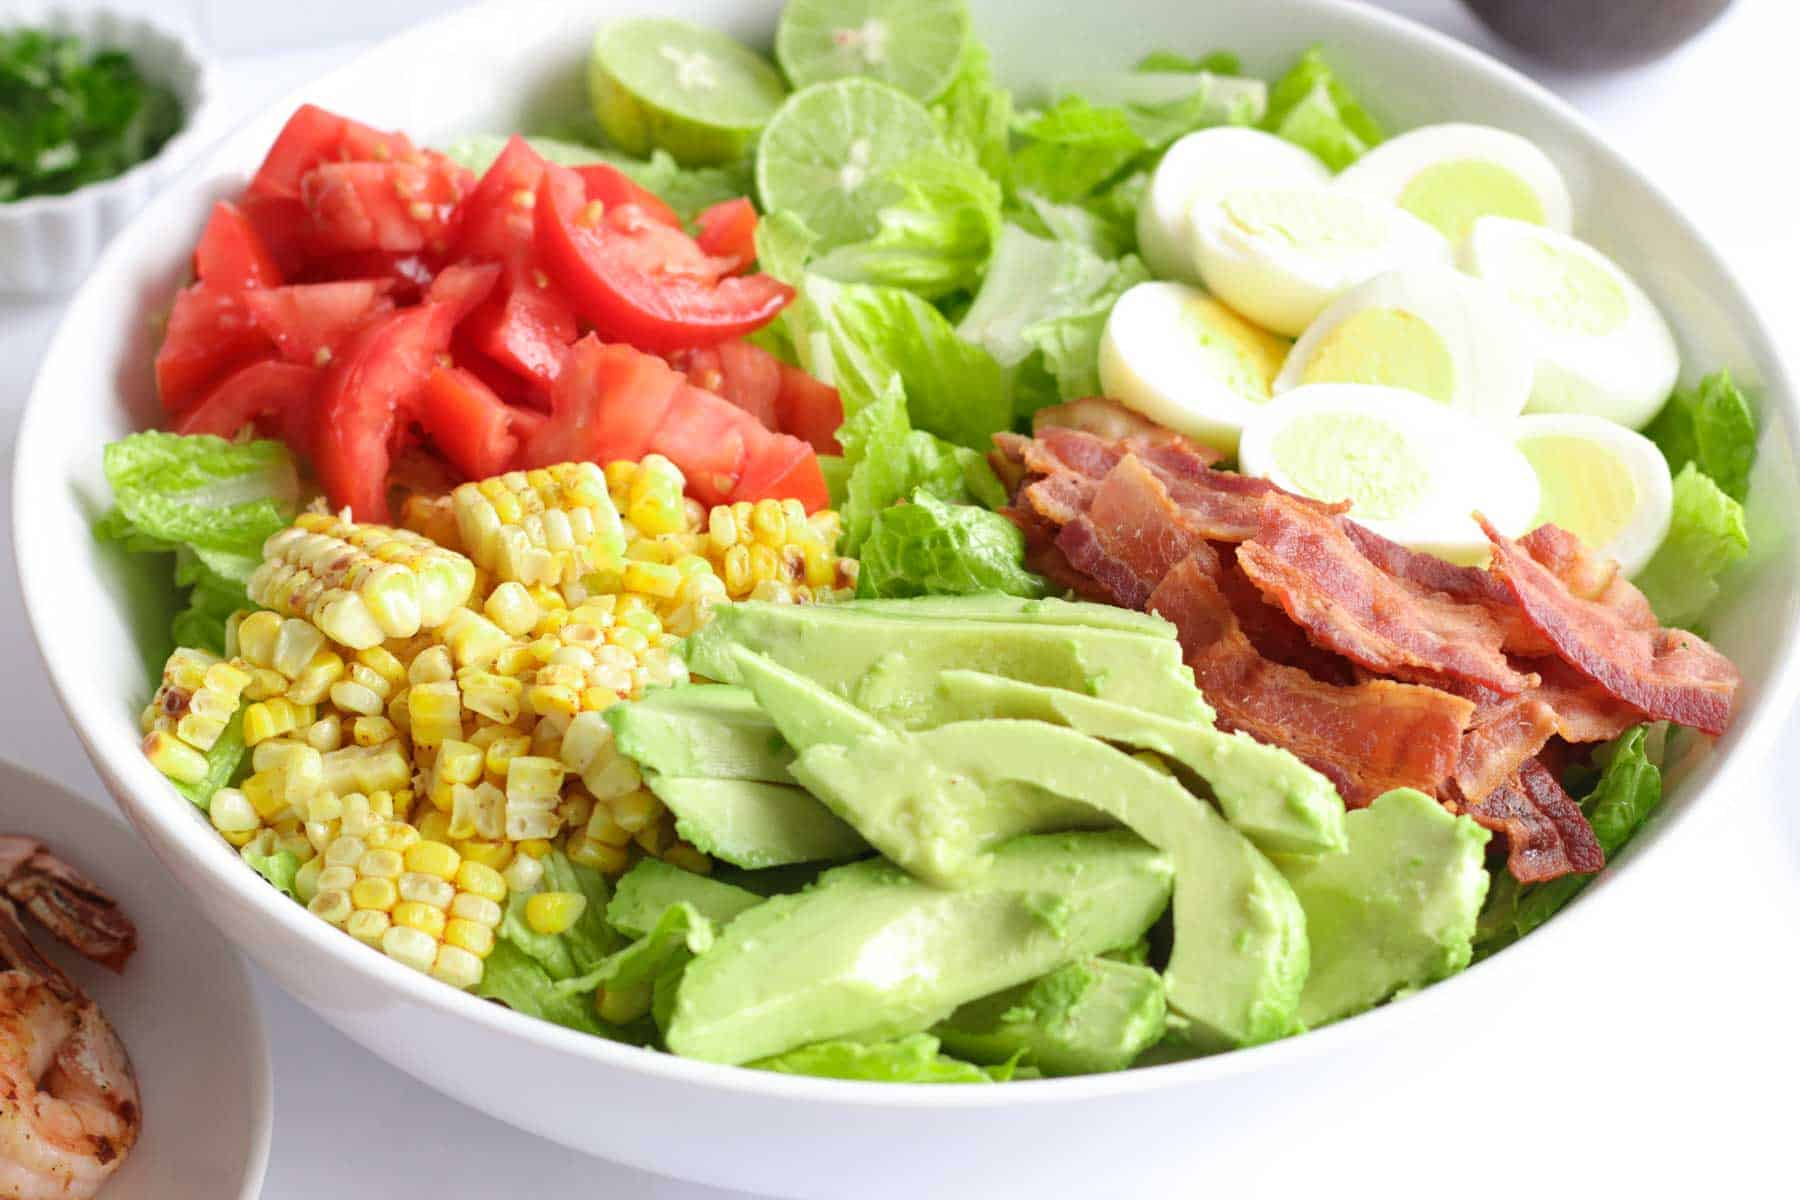 bowl of romaine lettuce topped with avocado, grilled corn, tomatoes, limes, ahrd boiled egg halves, and bacon